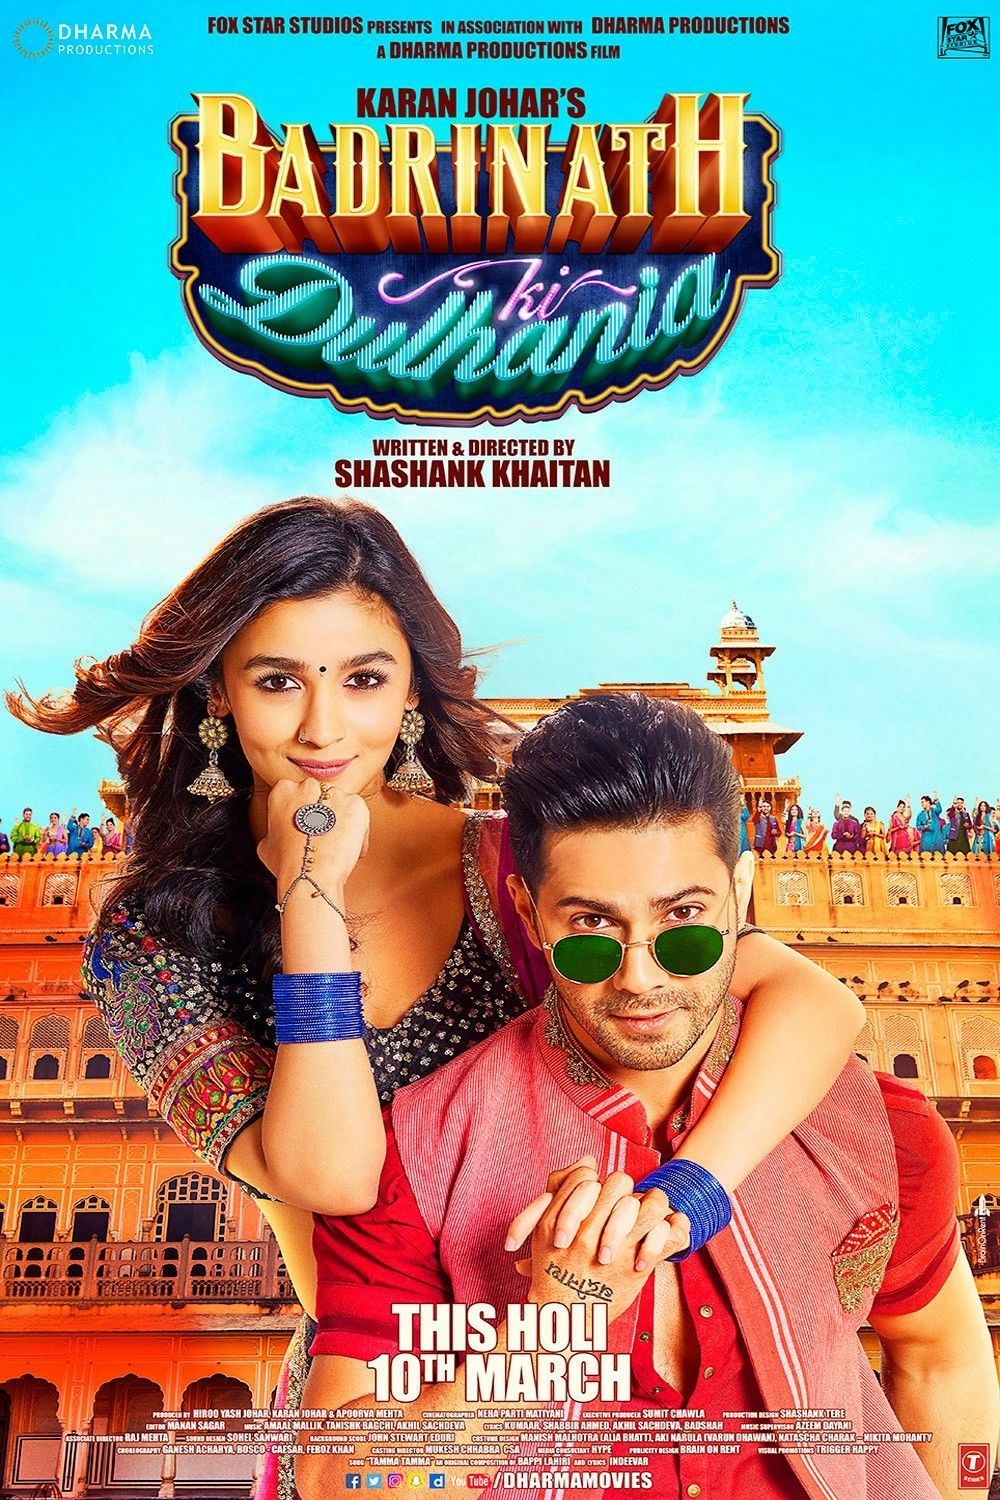 24 Movie Online Badrinath Ki Dulhania I Watch It Thursday 24 10 2017 Indian